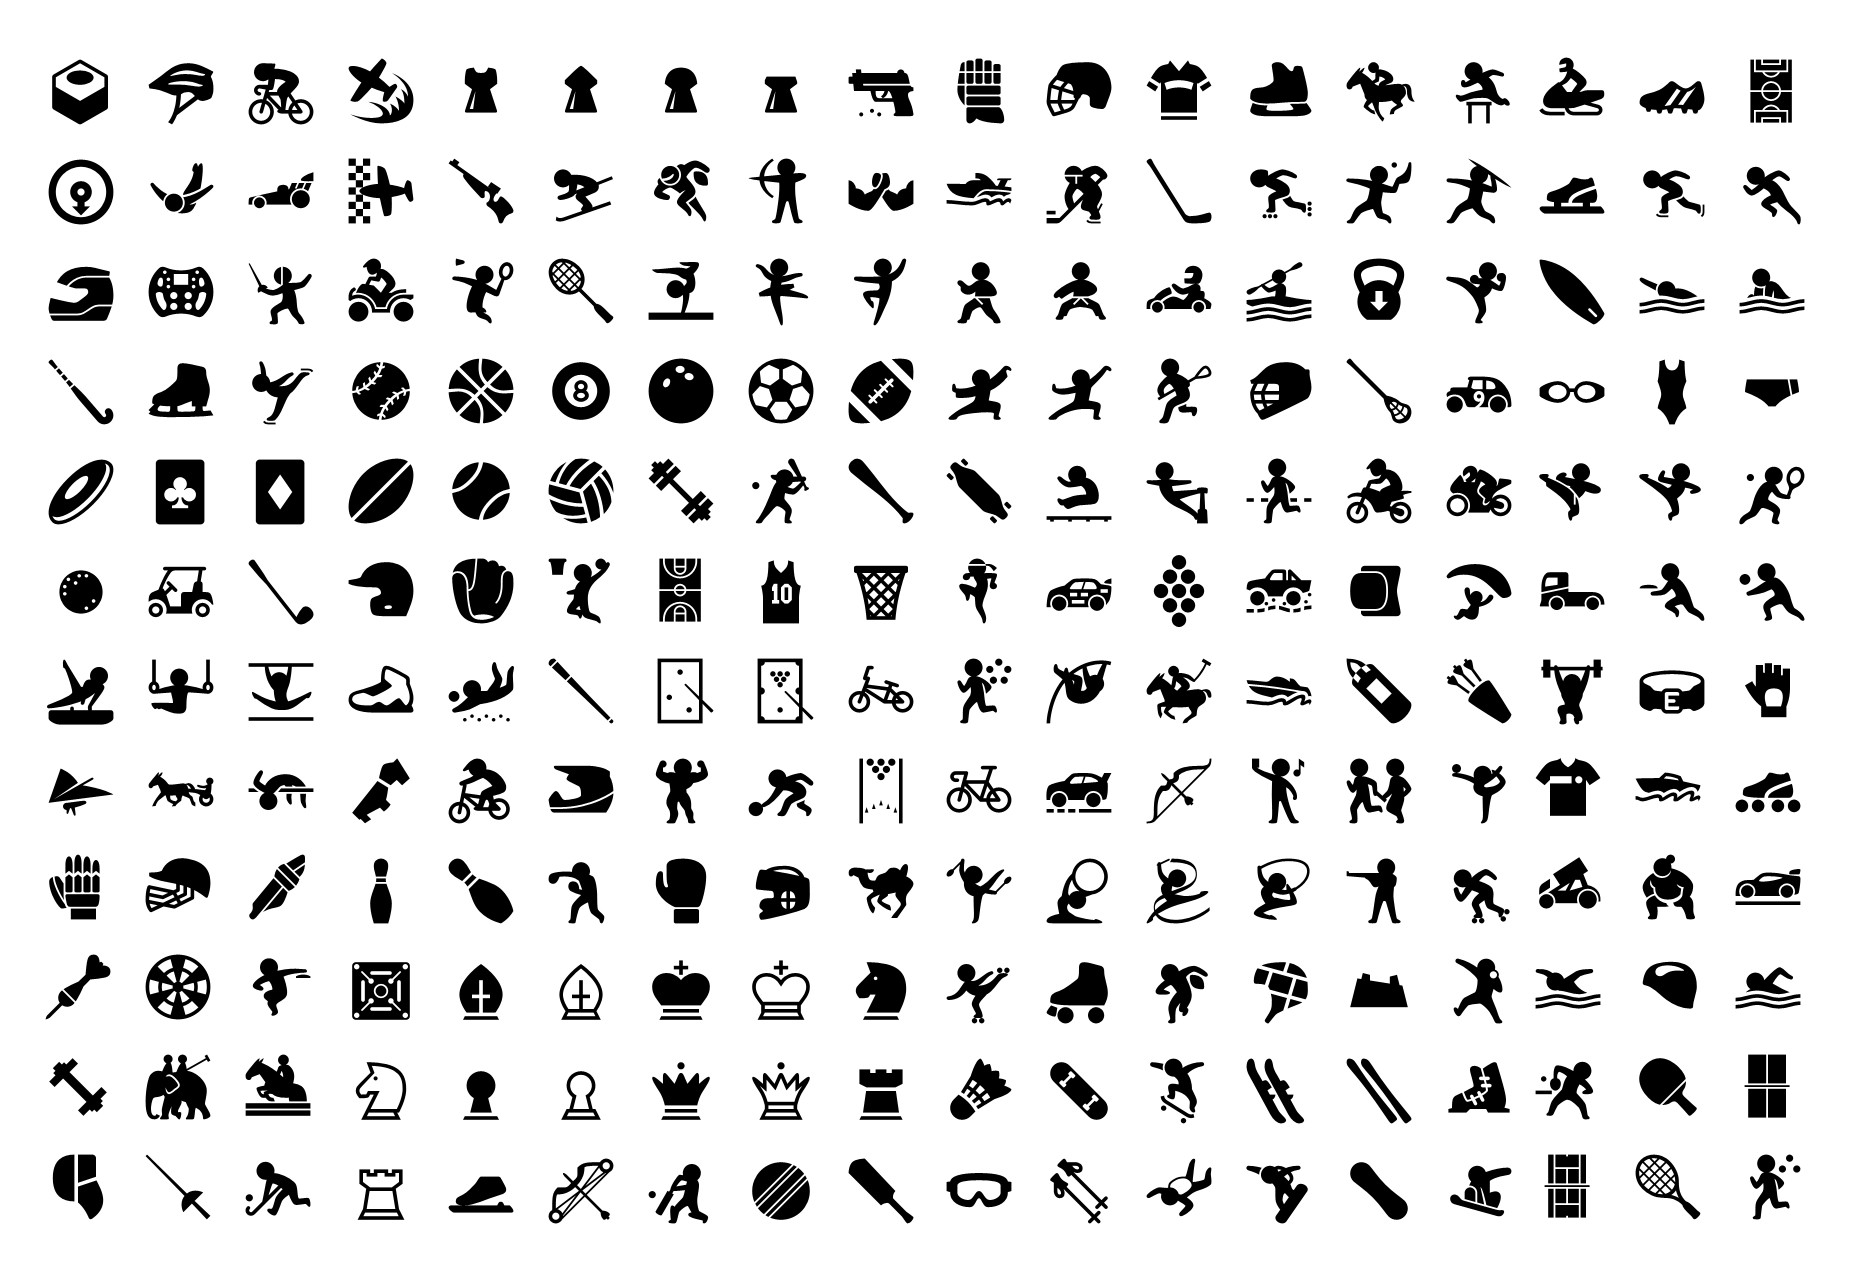 a-set-of-over-5800-filled-sport-icons